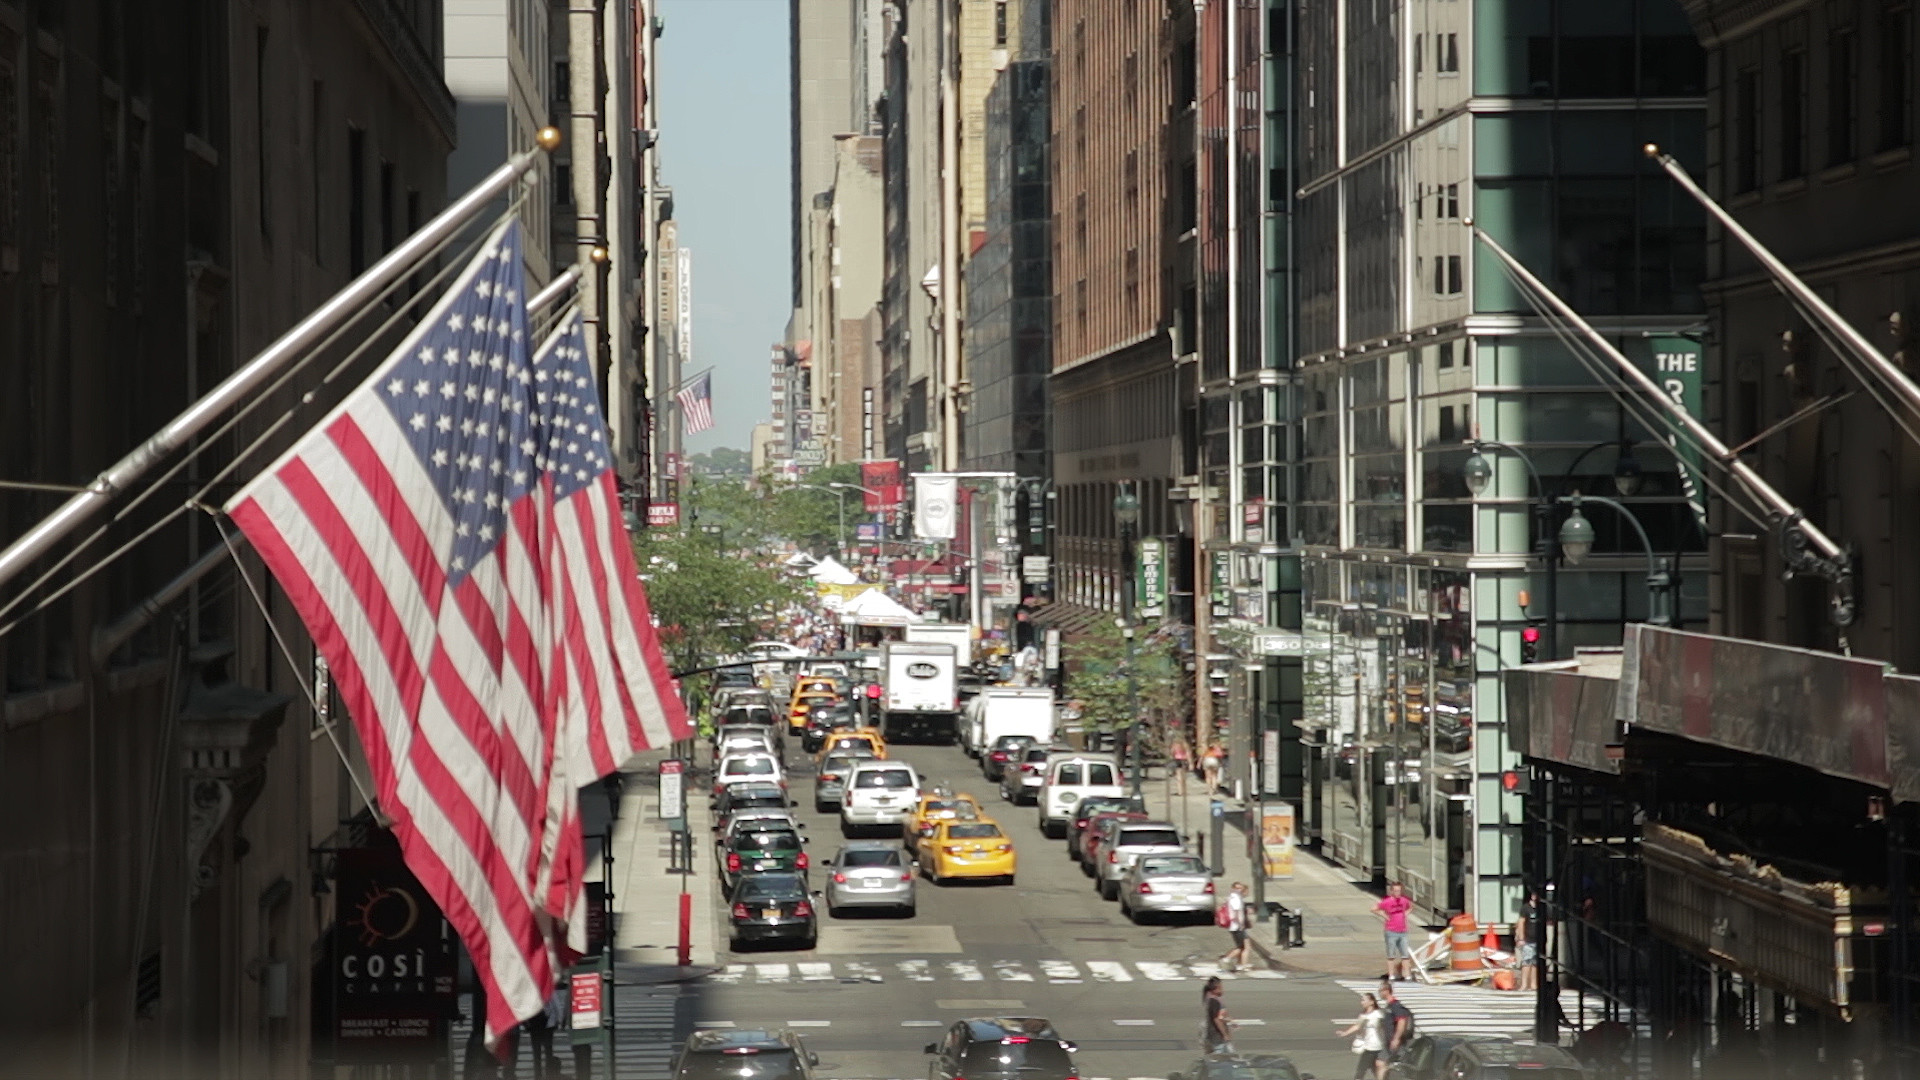 New York City street with US flag in foreground and traffic in background